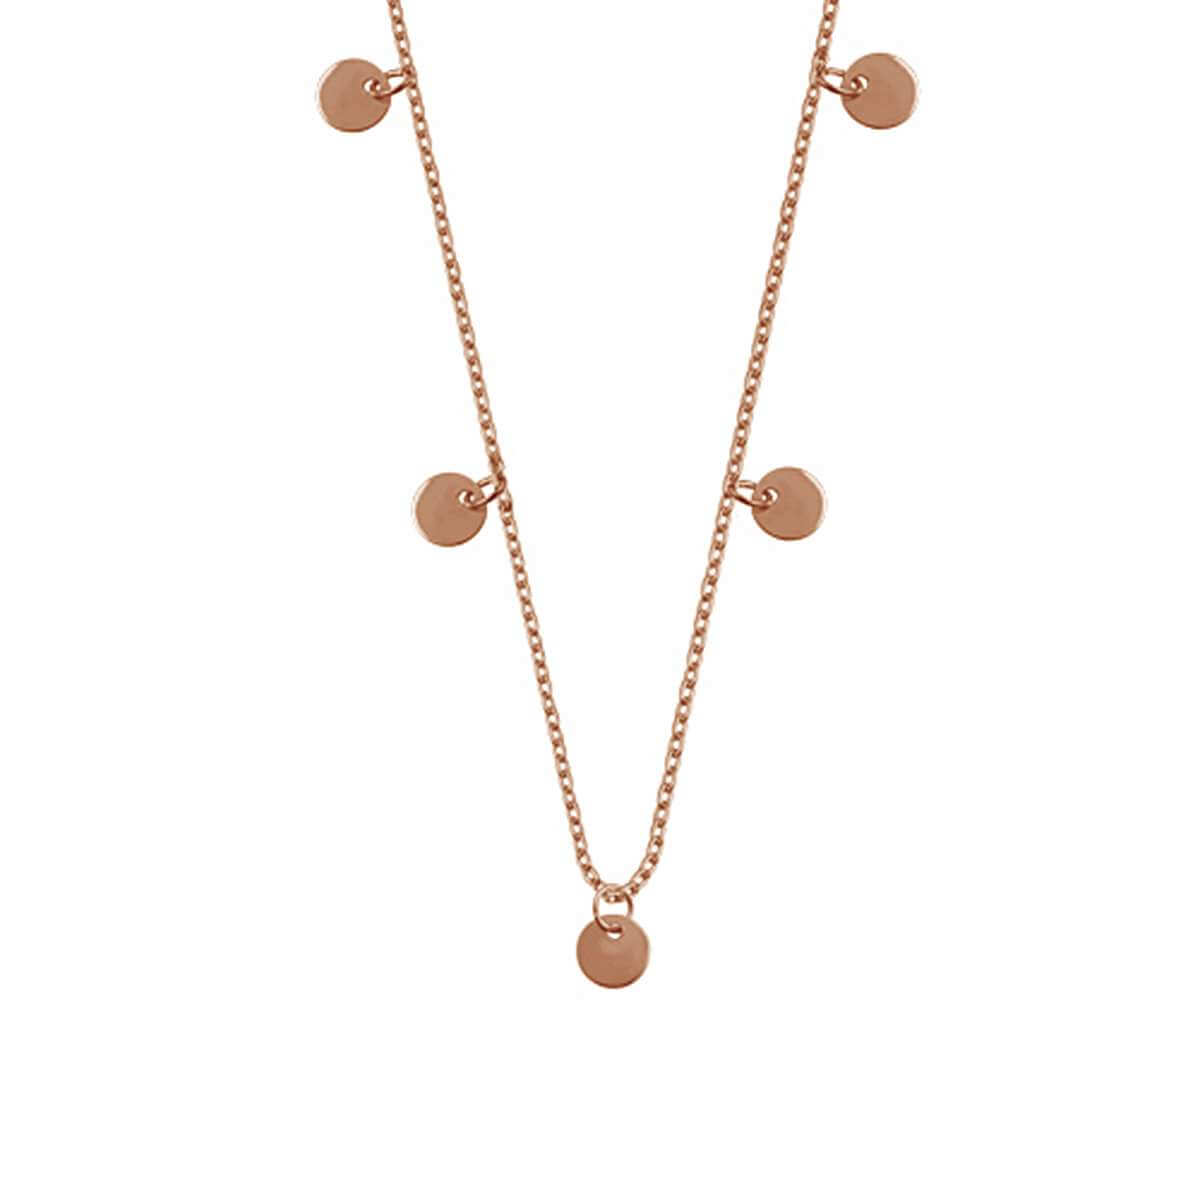 Rose Gold Plated Sterling Silver Multiple Circles Necklace 16 Inches